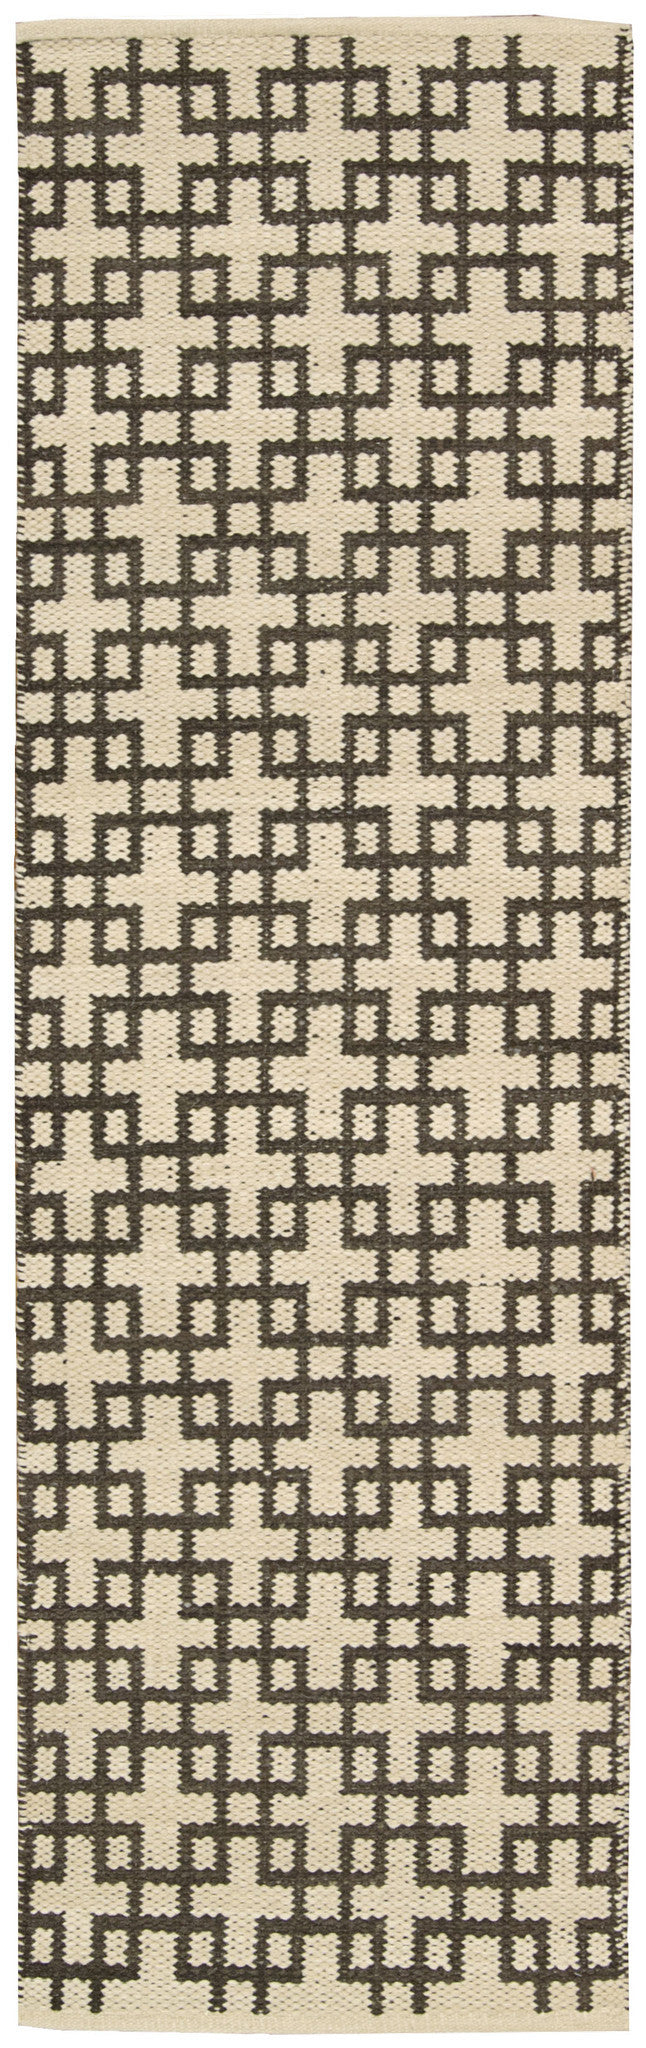 Barclay Butera Maze Bark Area Rug By Nourison MAZ01 BARK (Runner) | BOGO USA